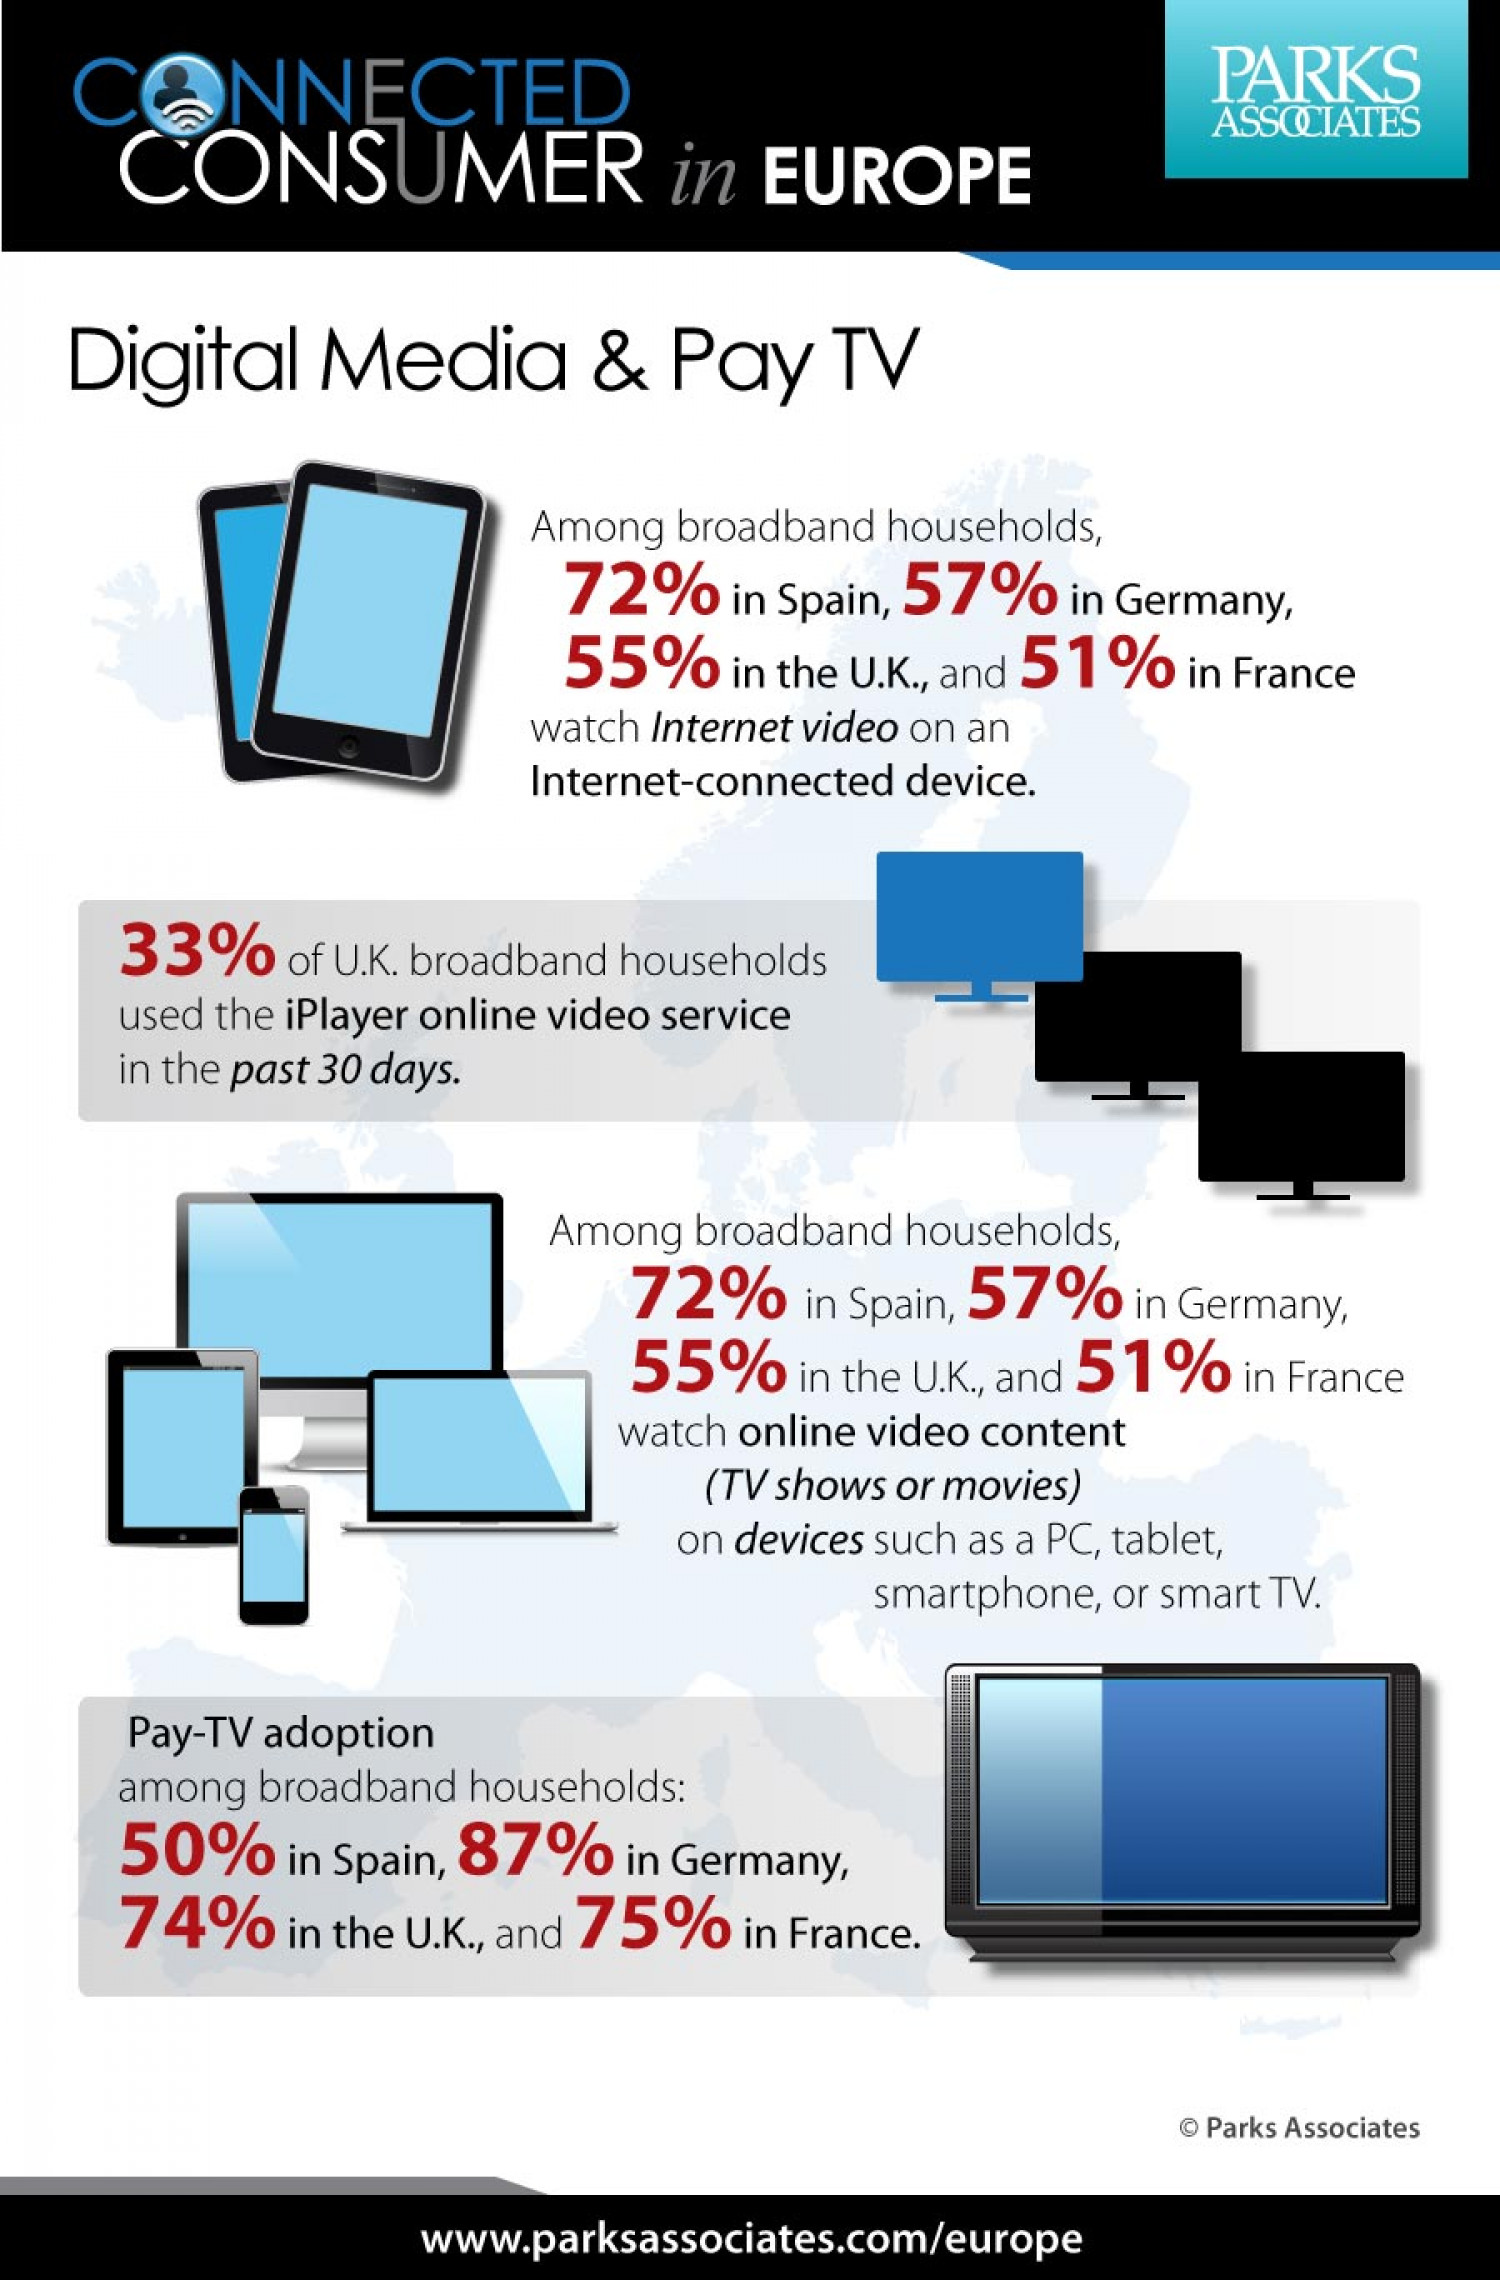 Digital Media & Pay-TV Adoption in Western Europe Infographic